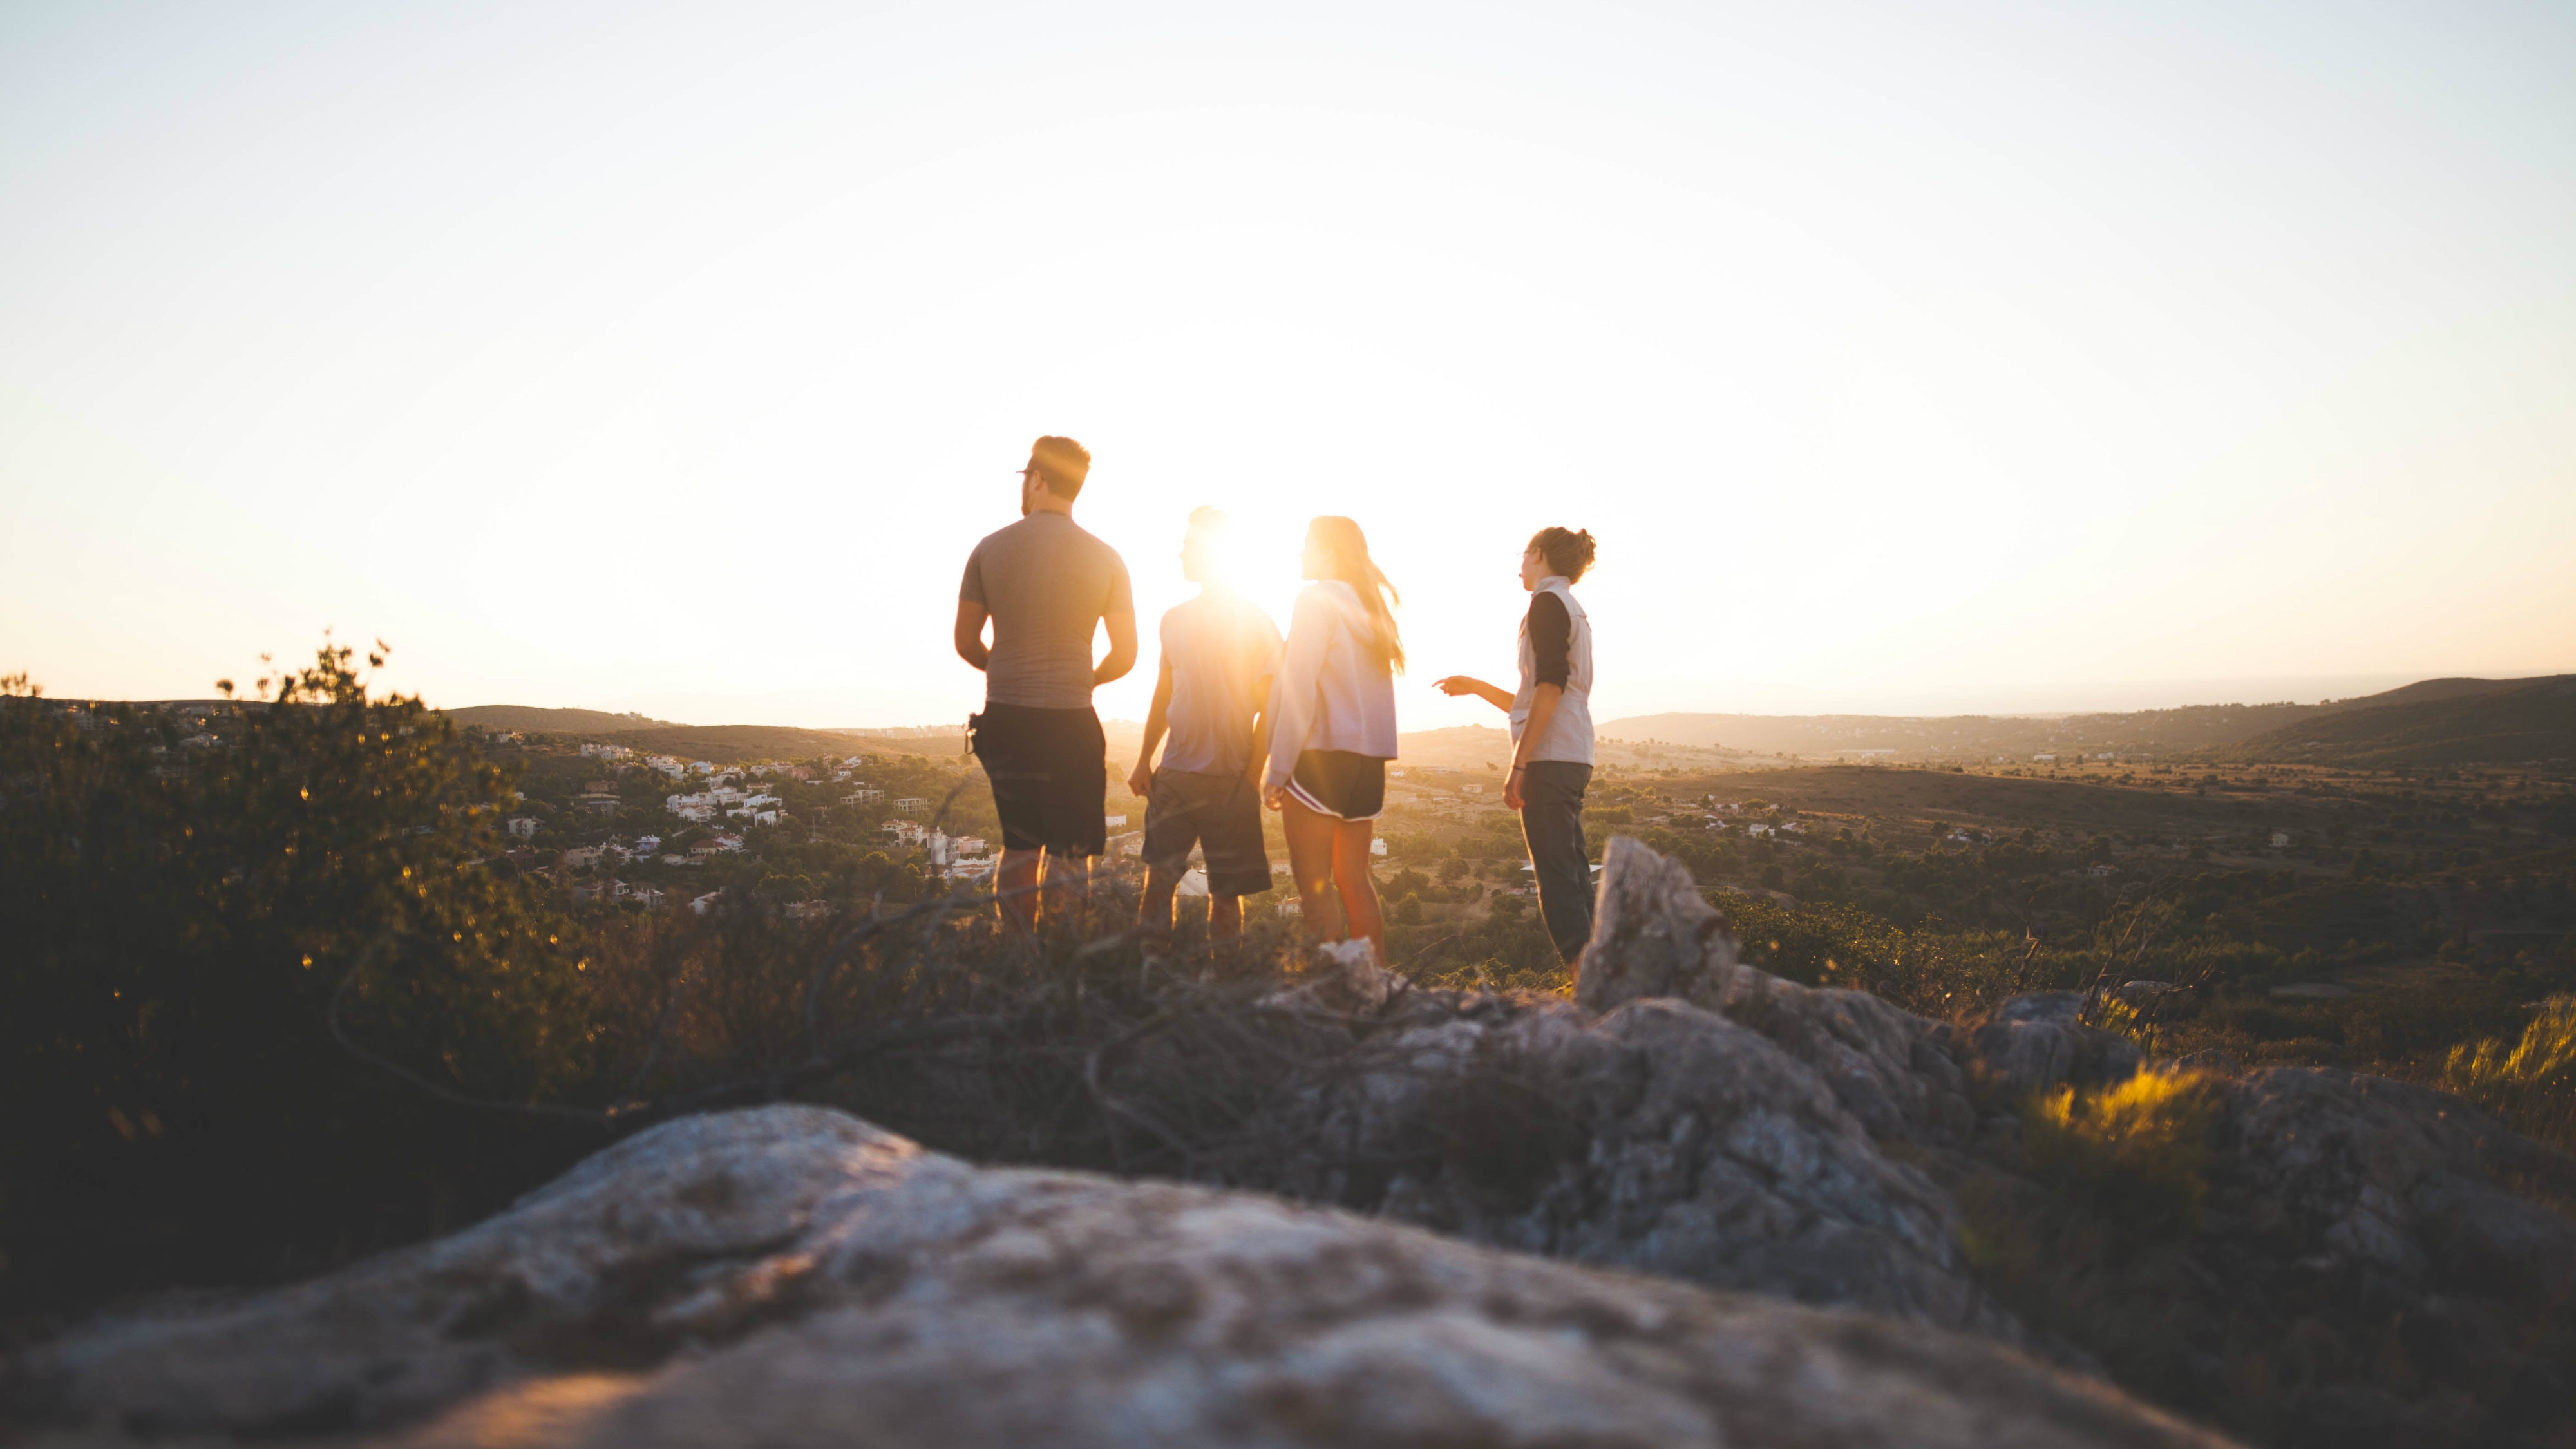 falls church christian single men Can christian men and women be friends  can christian women and men be  but friendships between men and women in the church are one holy expression of the .